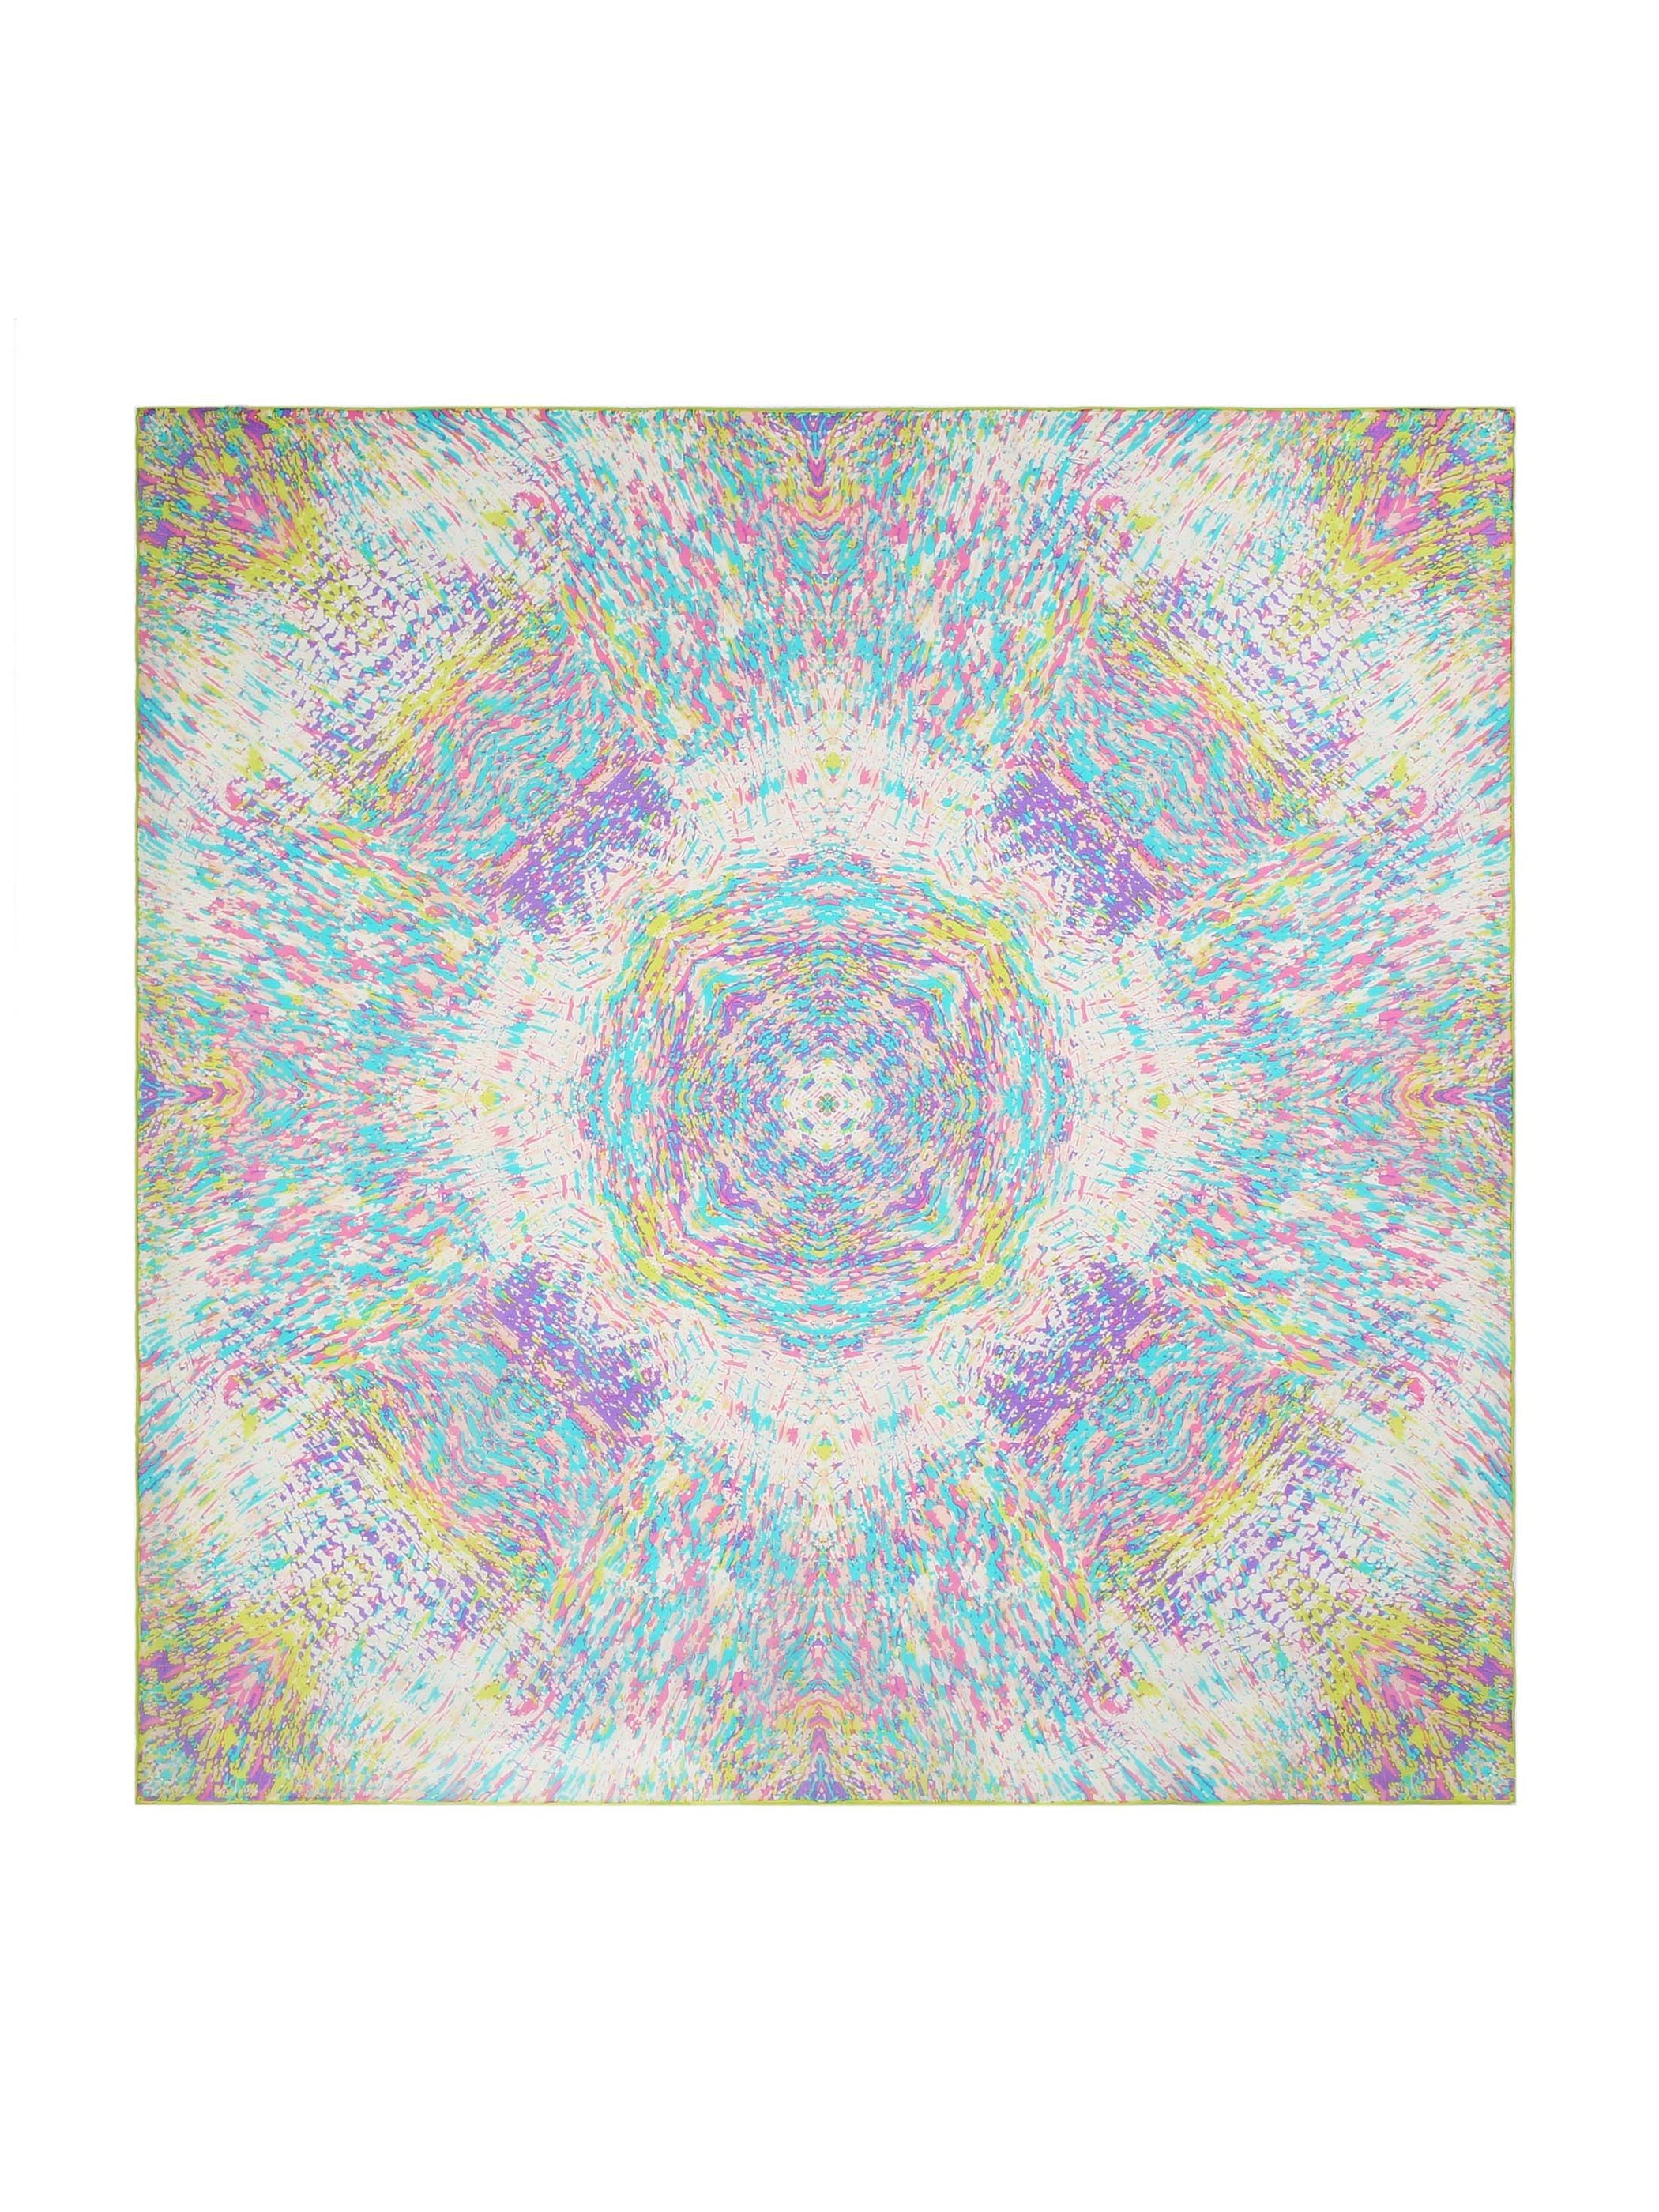 Coloring Game Hand Made Edge Beautiful Square Silk Scarf